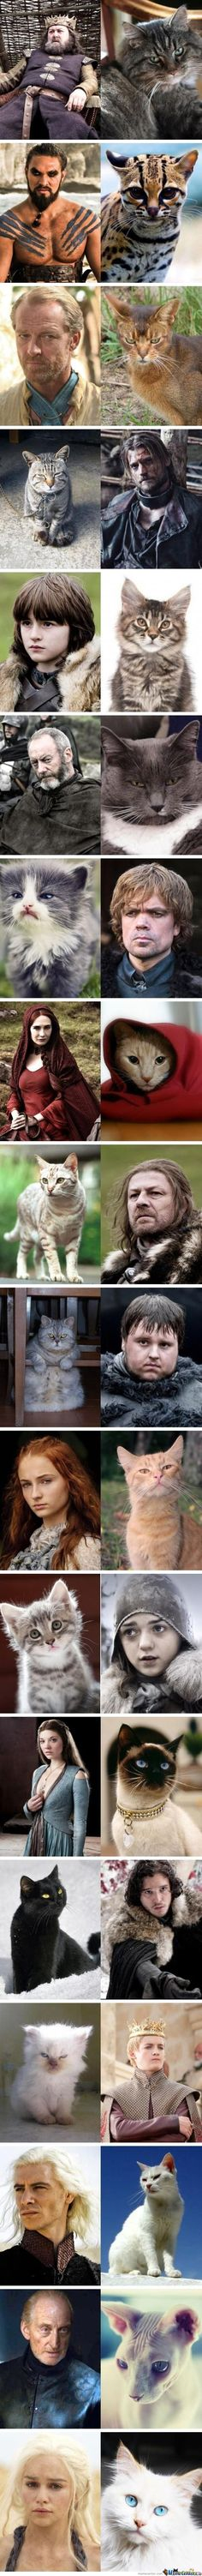 If GOT were cats